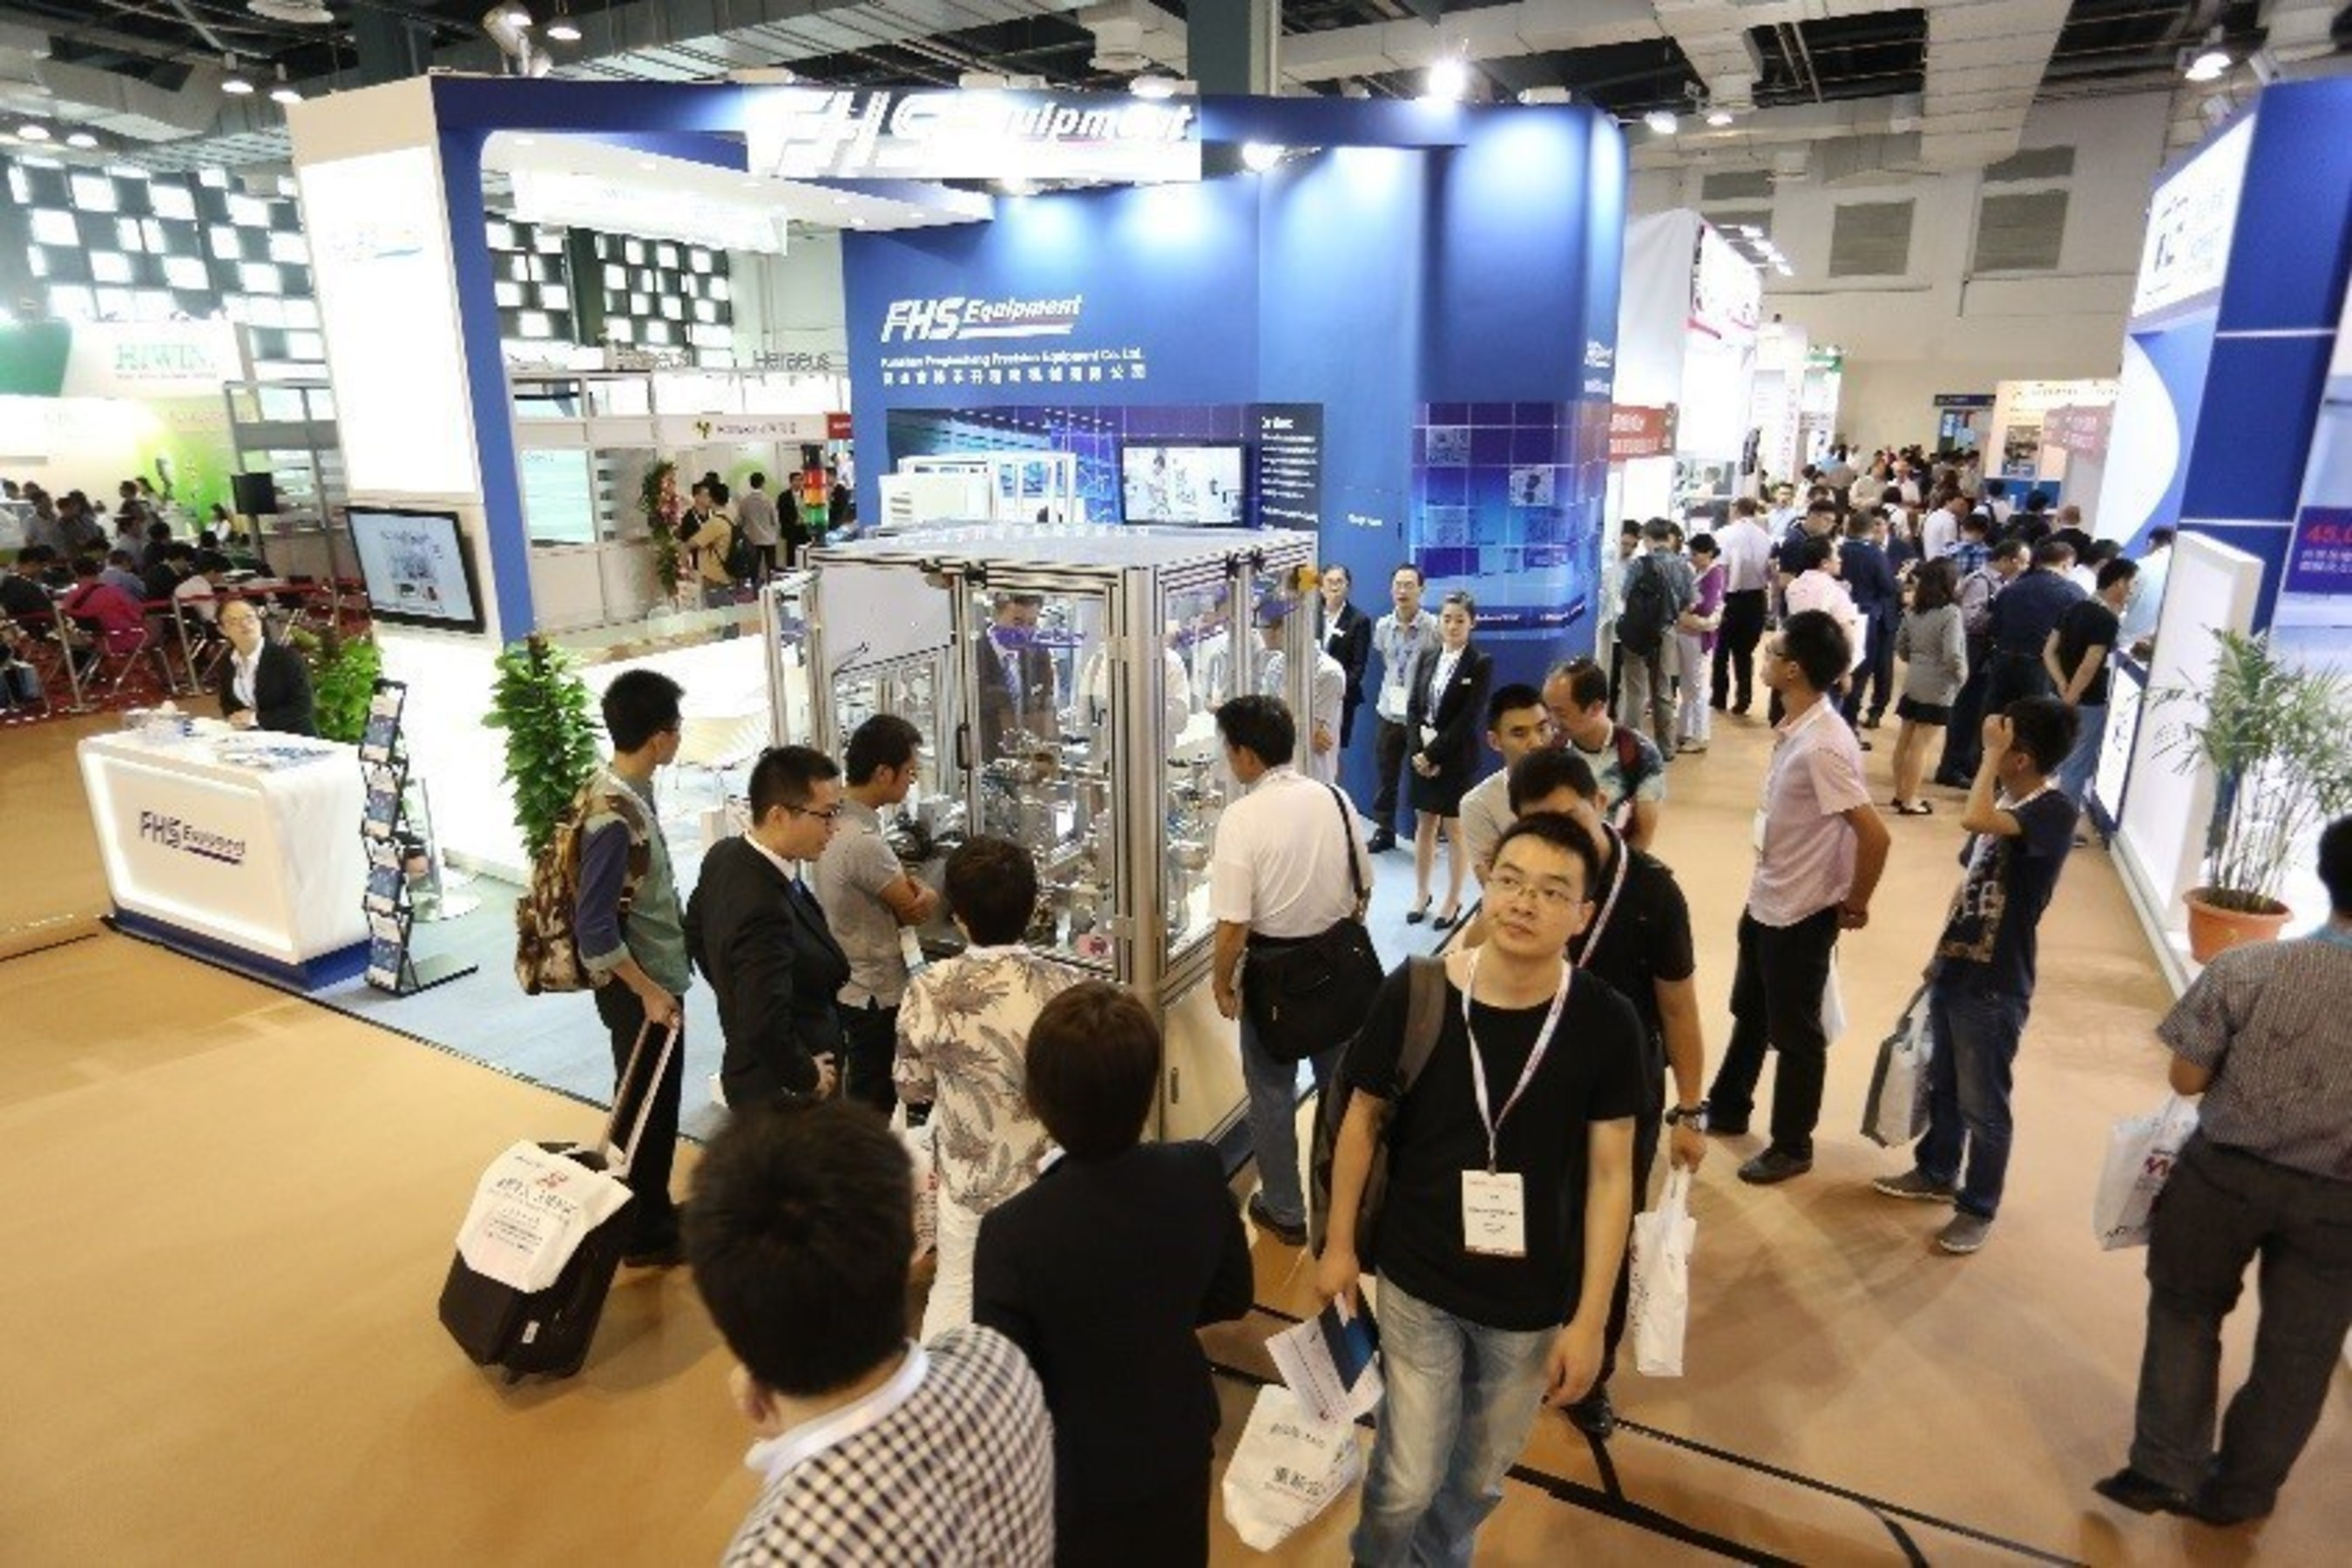 Medtec China exhibition area onsite of 2015